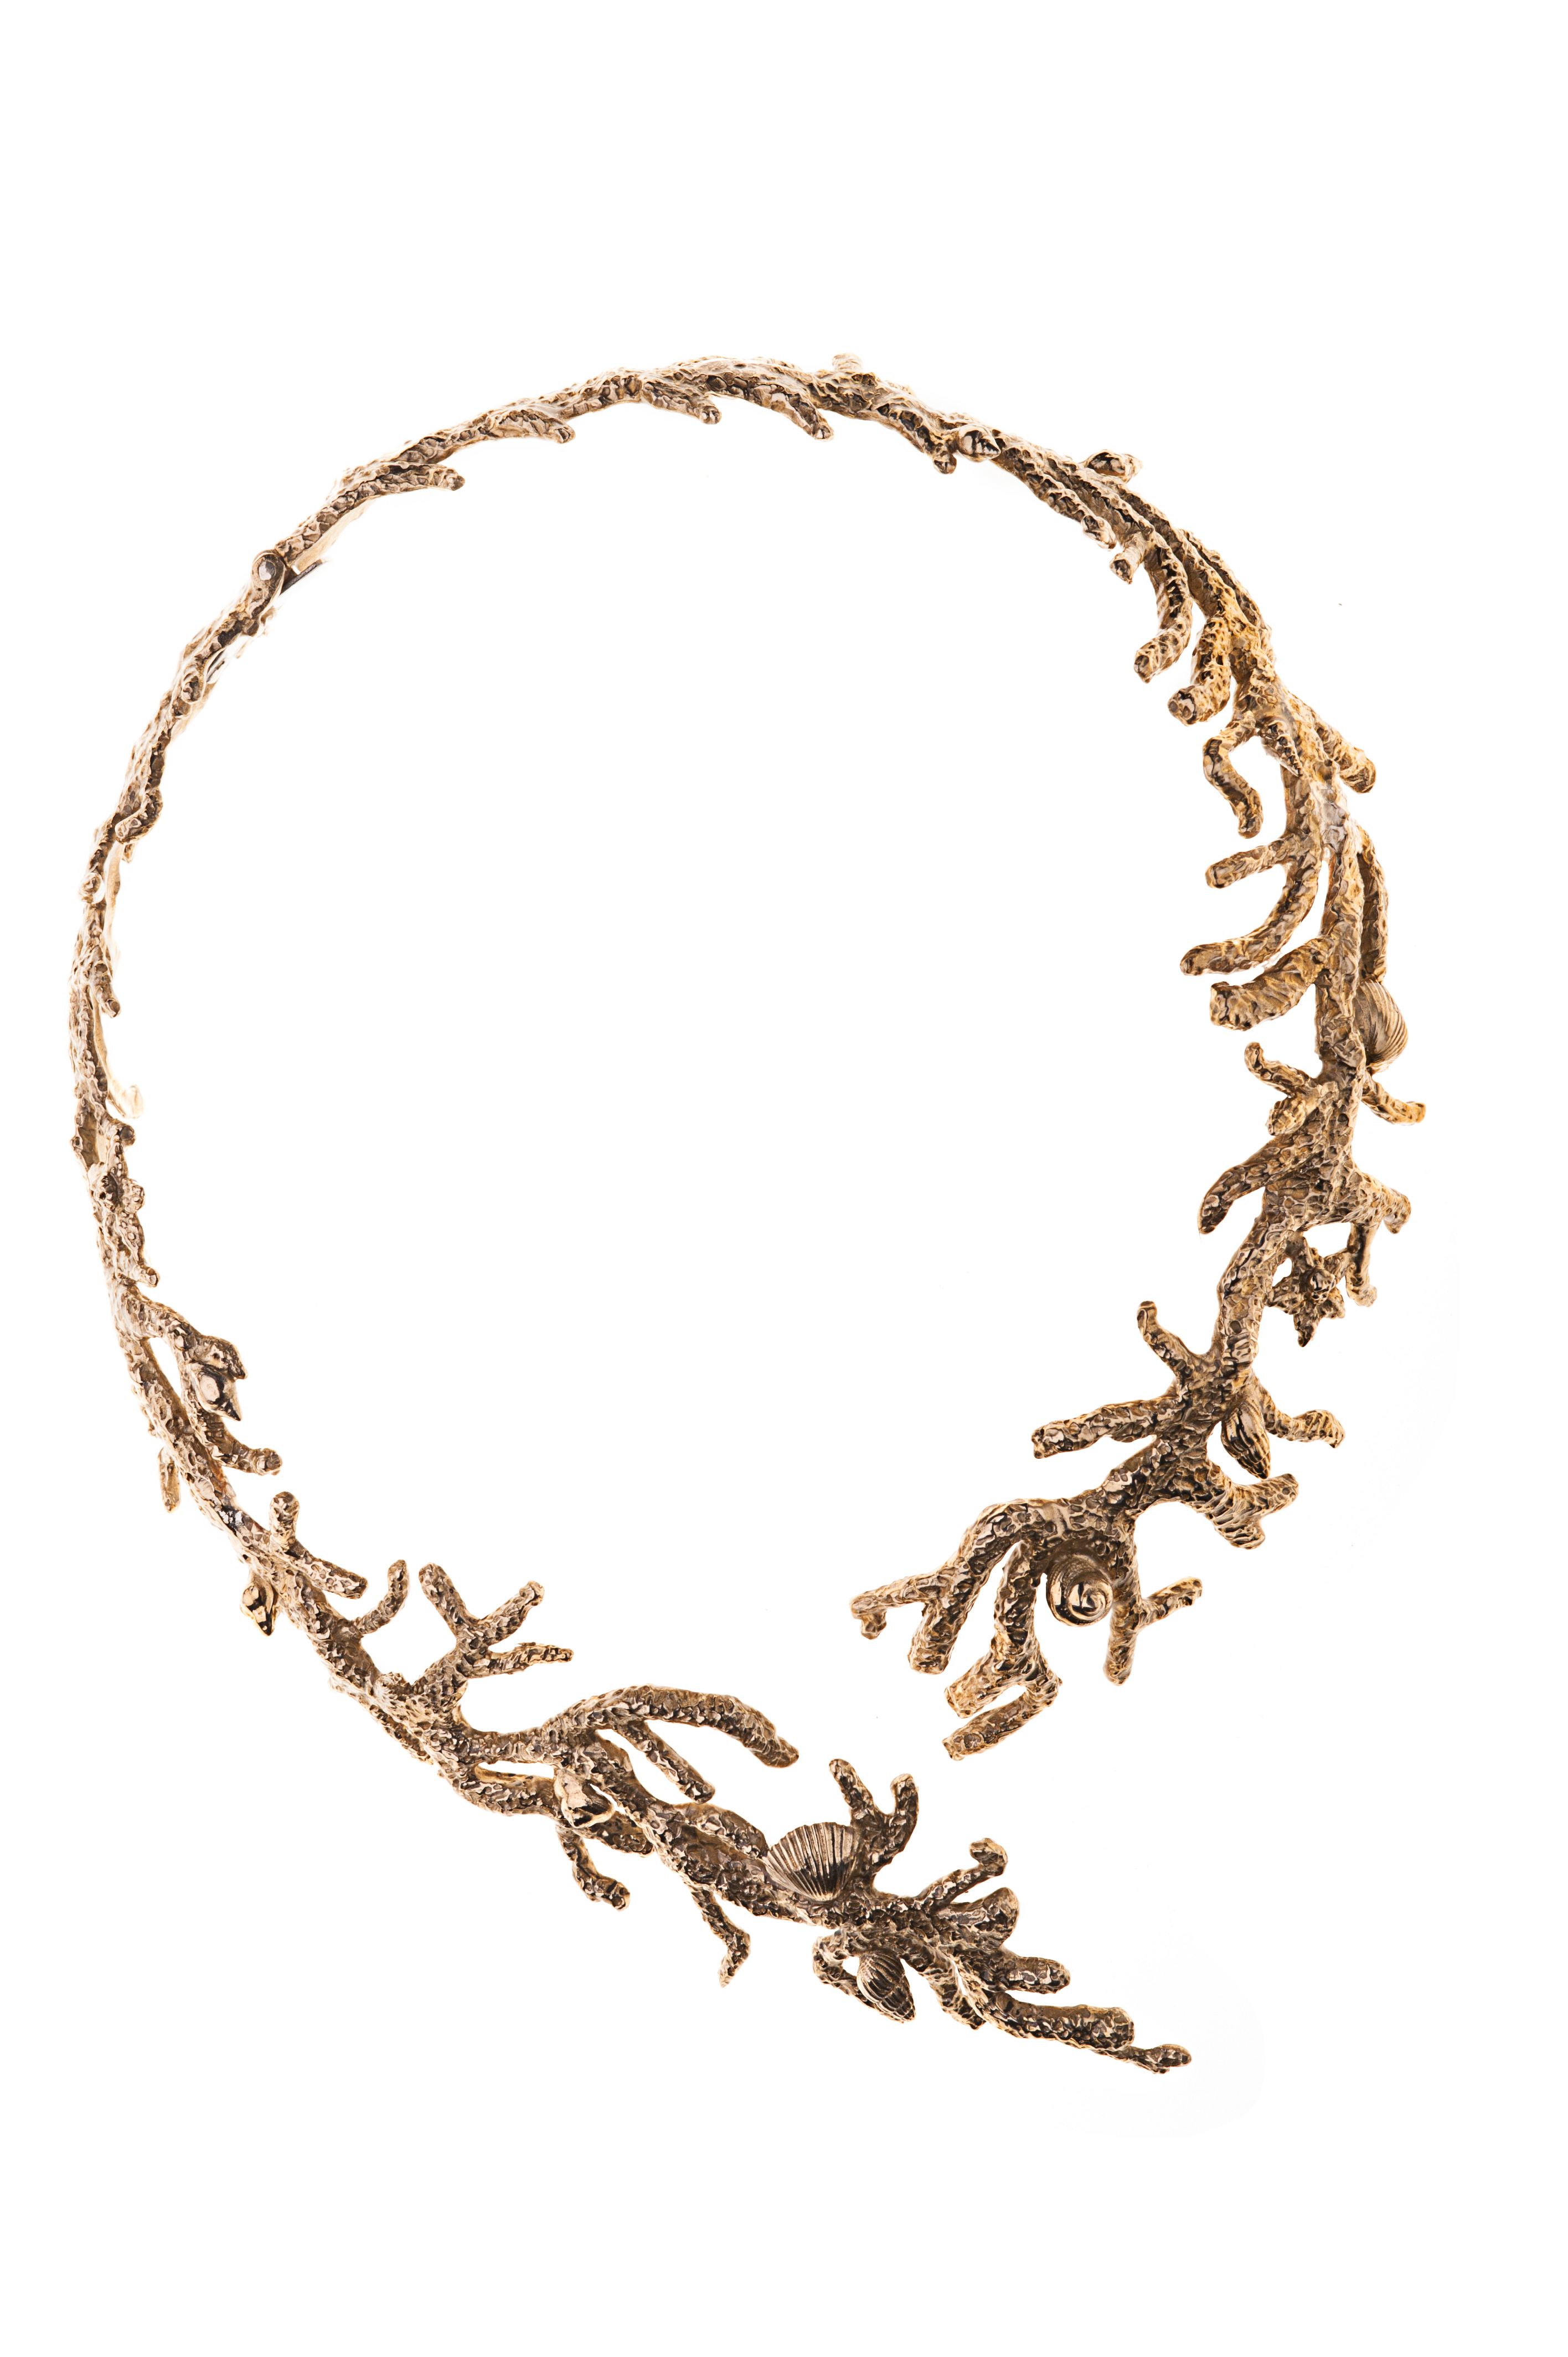 Brass coral shaped stiff necklaces